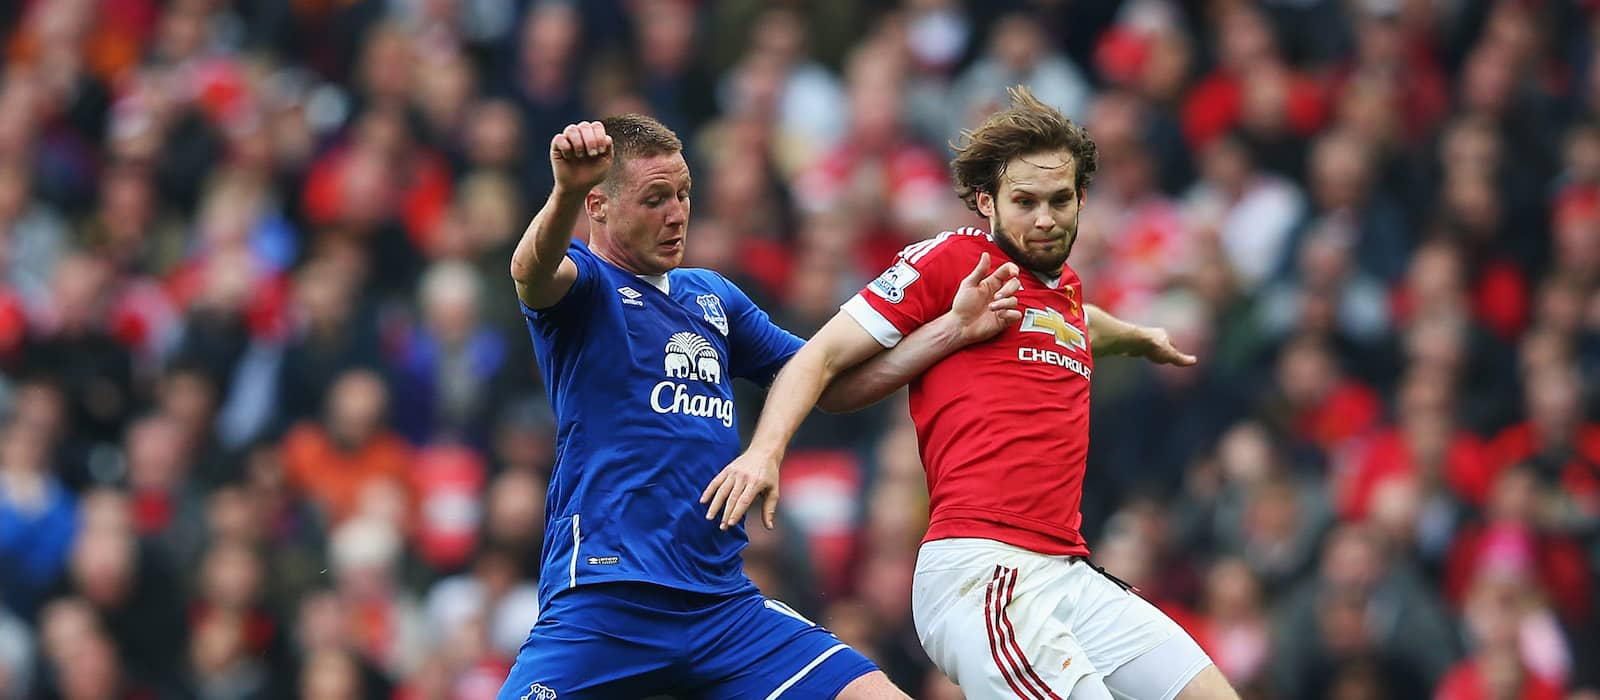 Manchester United fans delighted with Daley Blind